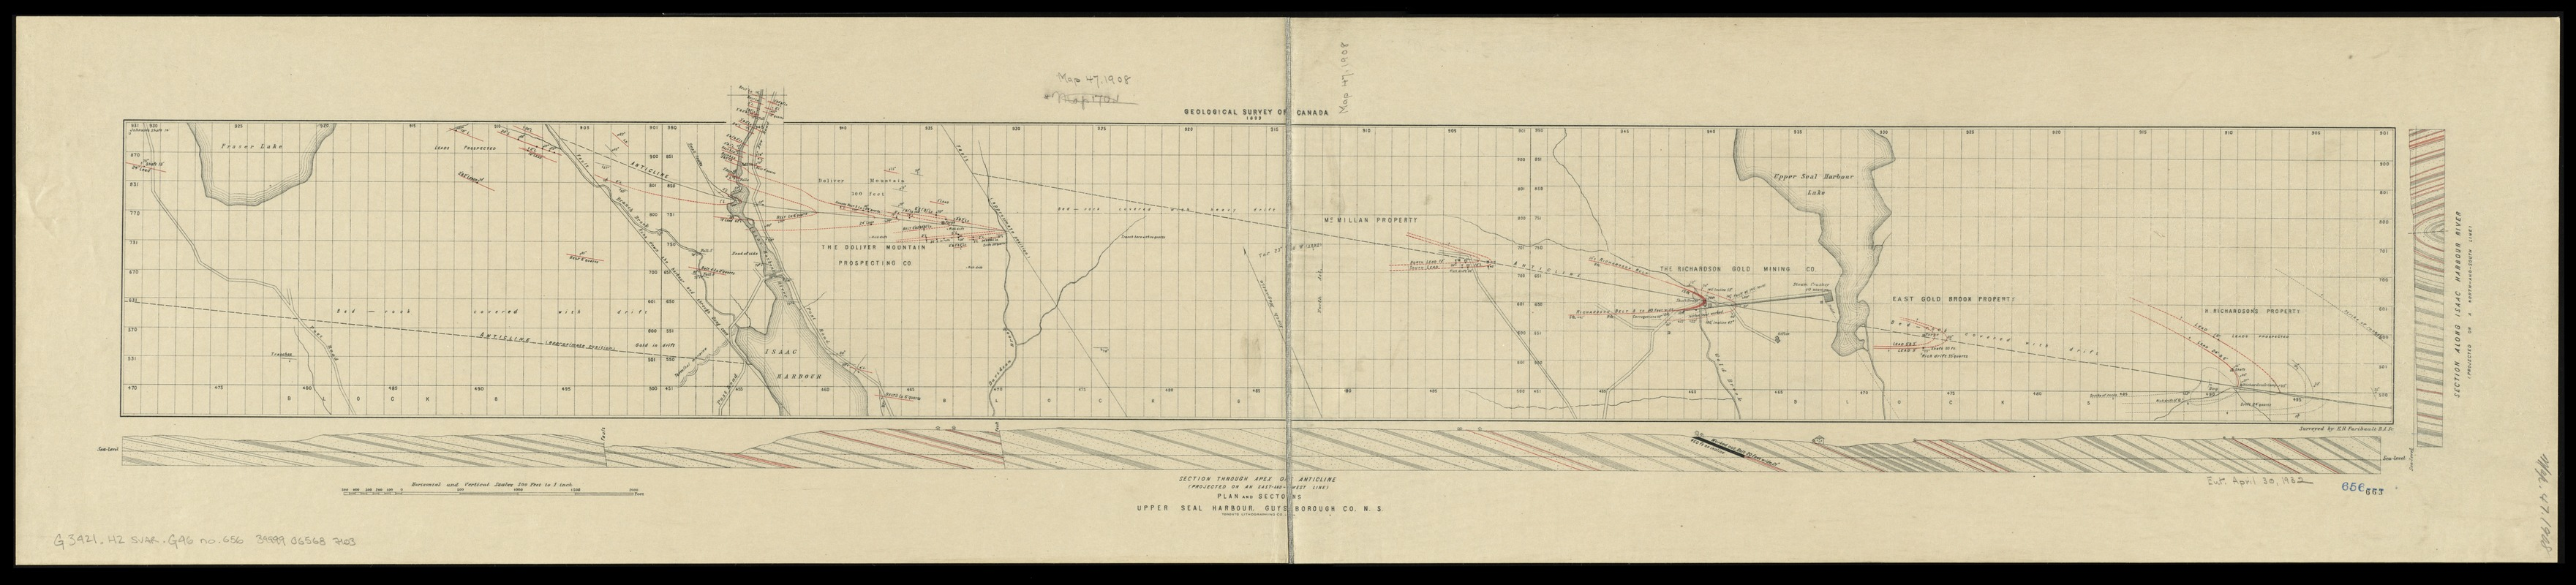 Plan and sections Upper Seal Harbour, Guysborough Co., N.S